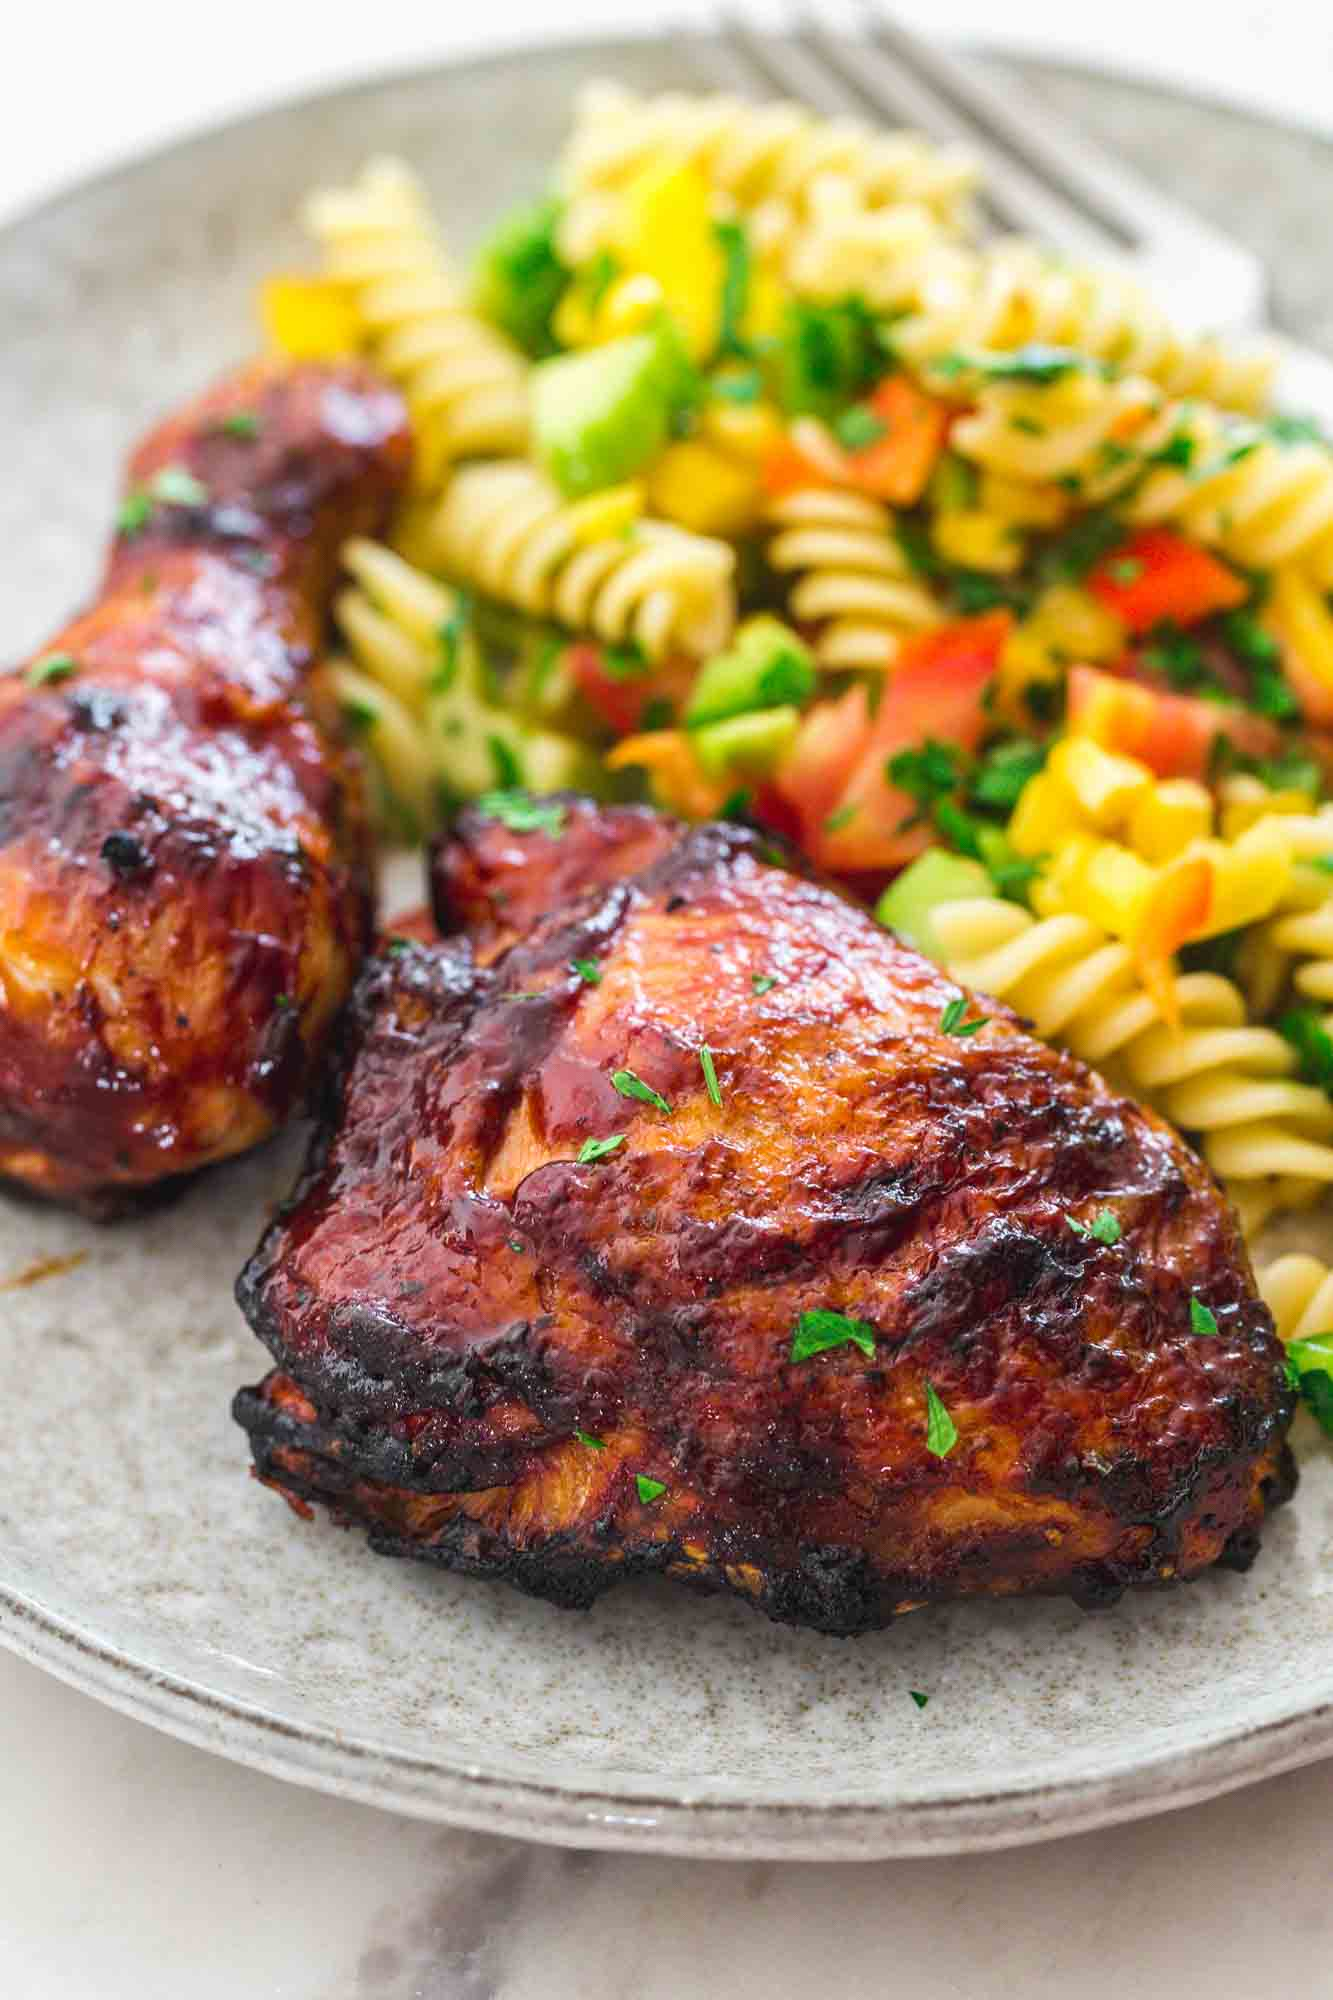 Grilled BBQ Chicken thigh and drumstick served in a plate with pasta salad